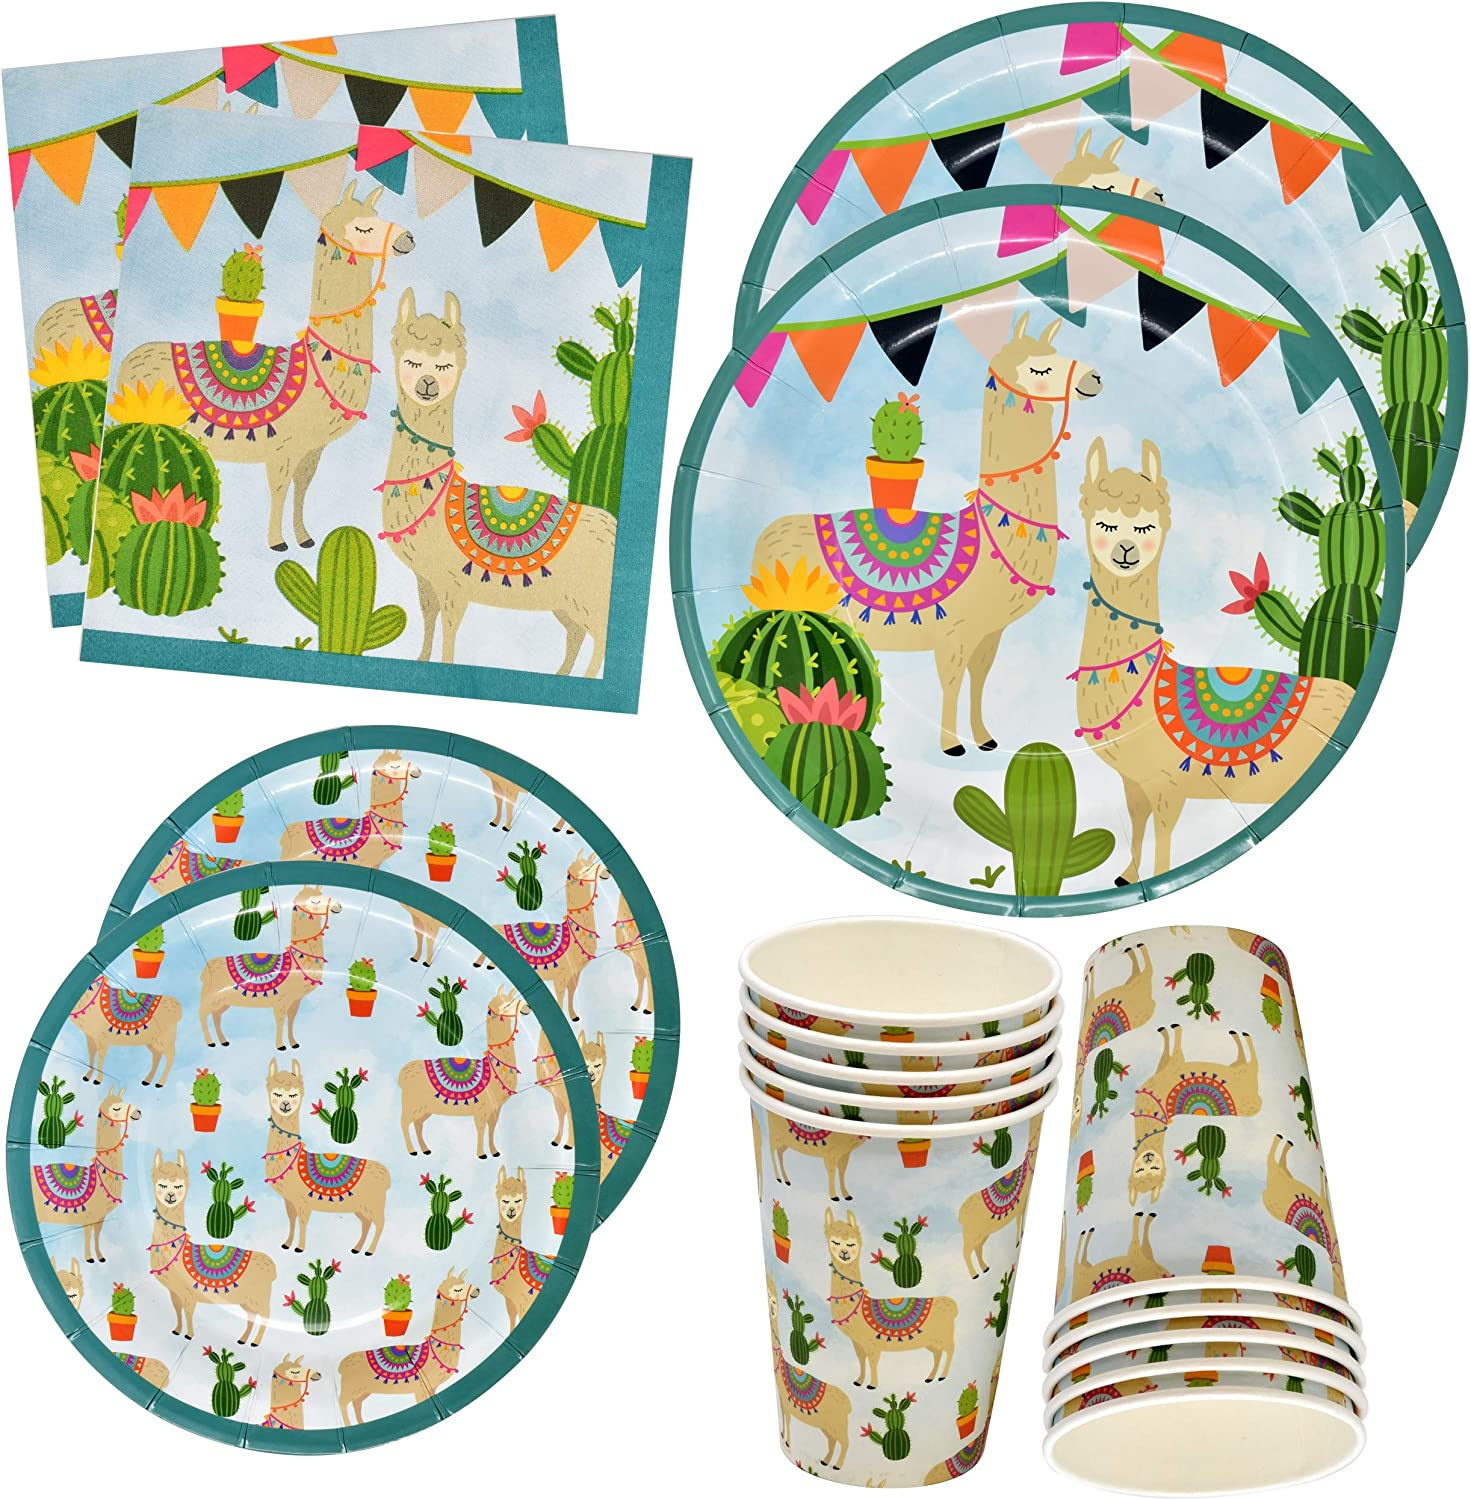 Amazon Com Llama Cactus Party Supplies Set 24 9 Plates 24 7 Plates 24 9 Oz Cups 50 Lunch Napkins For Birthday Baby Shower Fiesta Party Tableware Themed Decorations Disposable Paper Dinnerware By